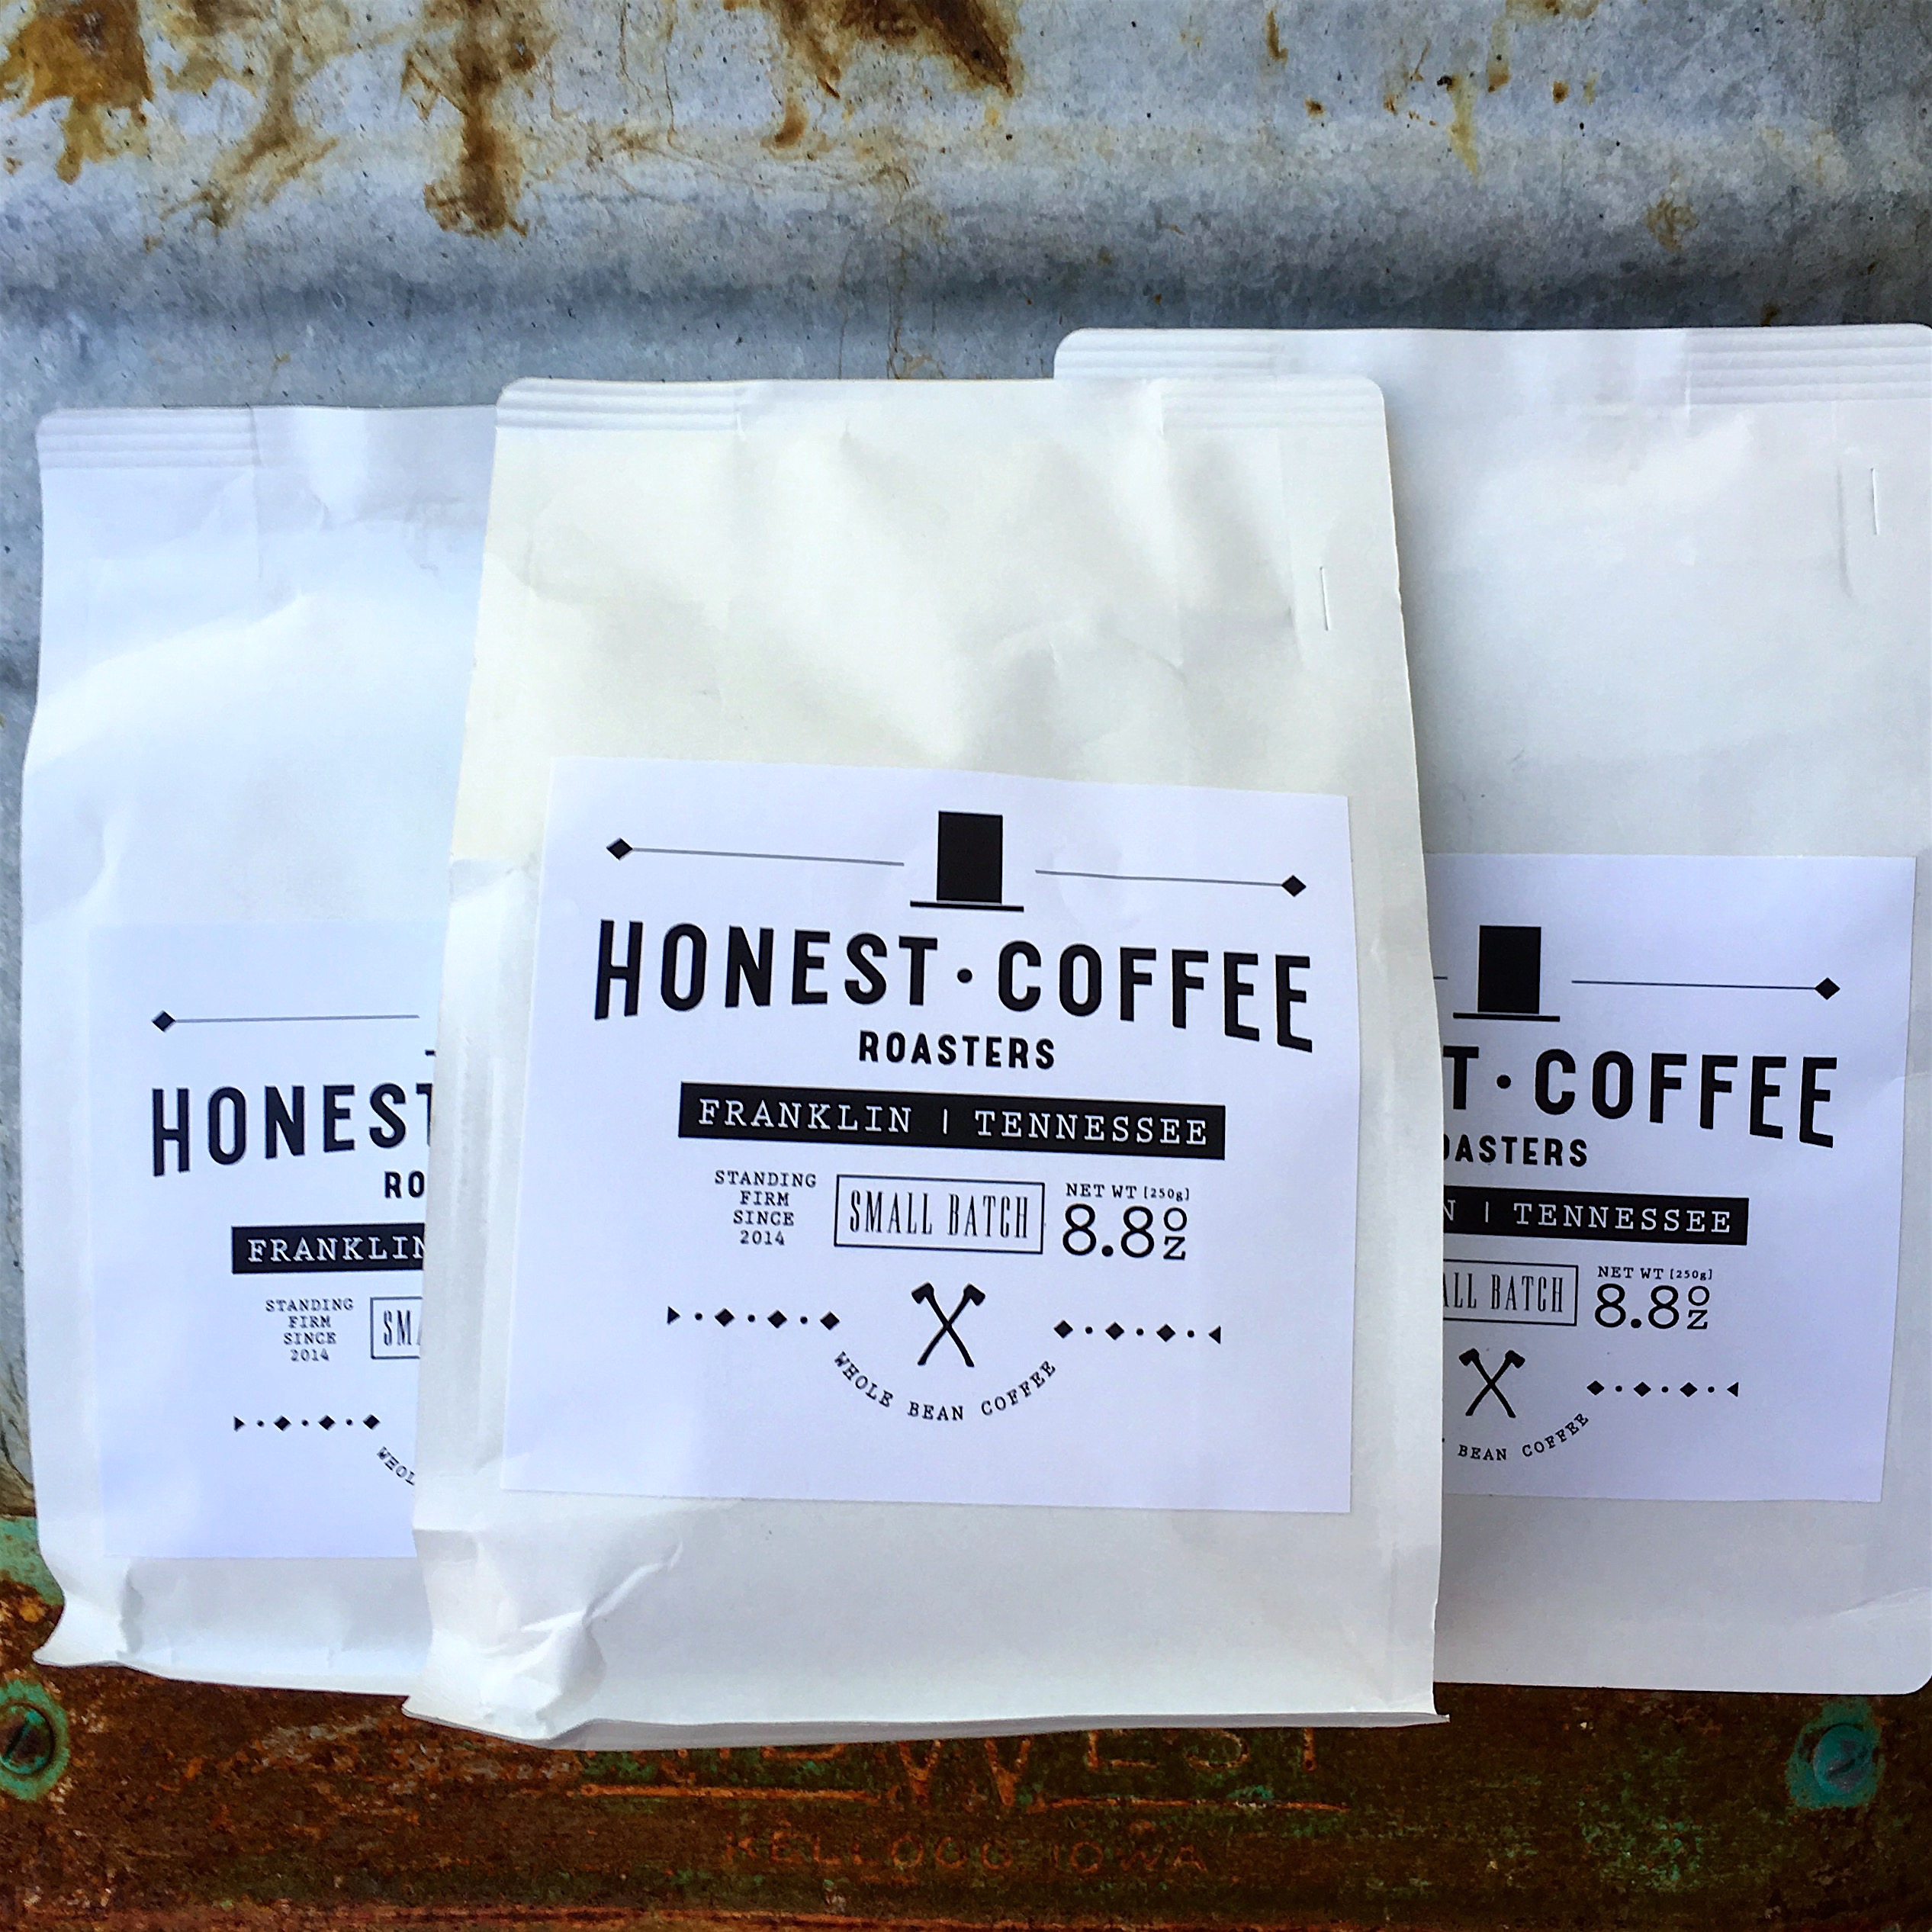 Honest Coffee Roasters El Palto